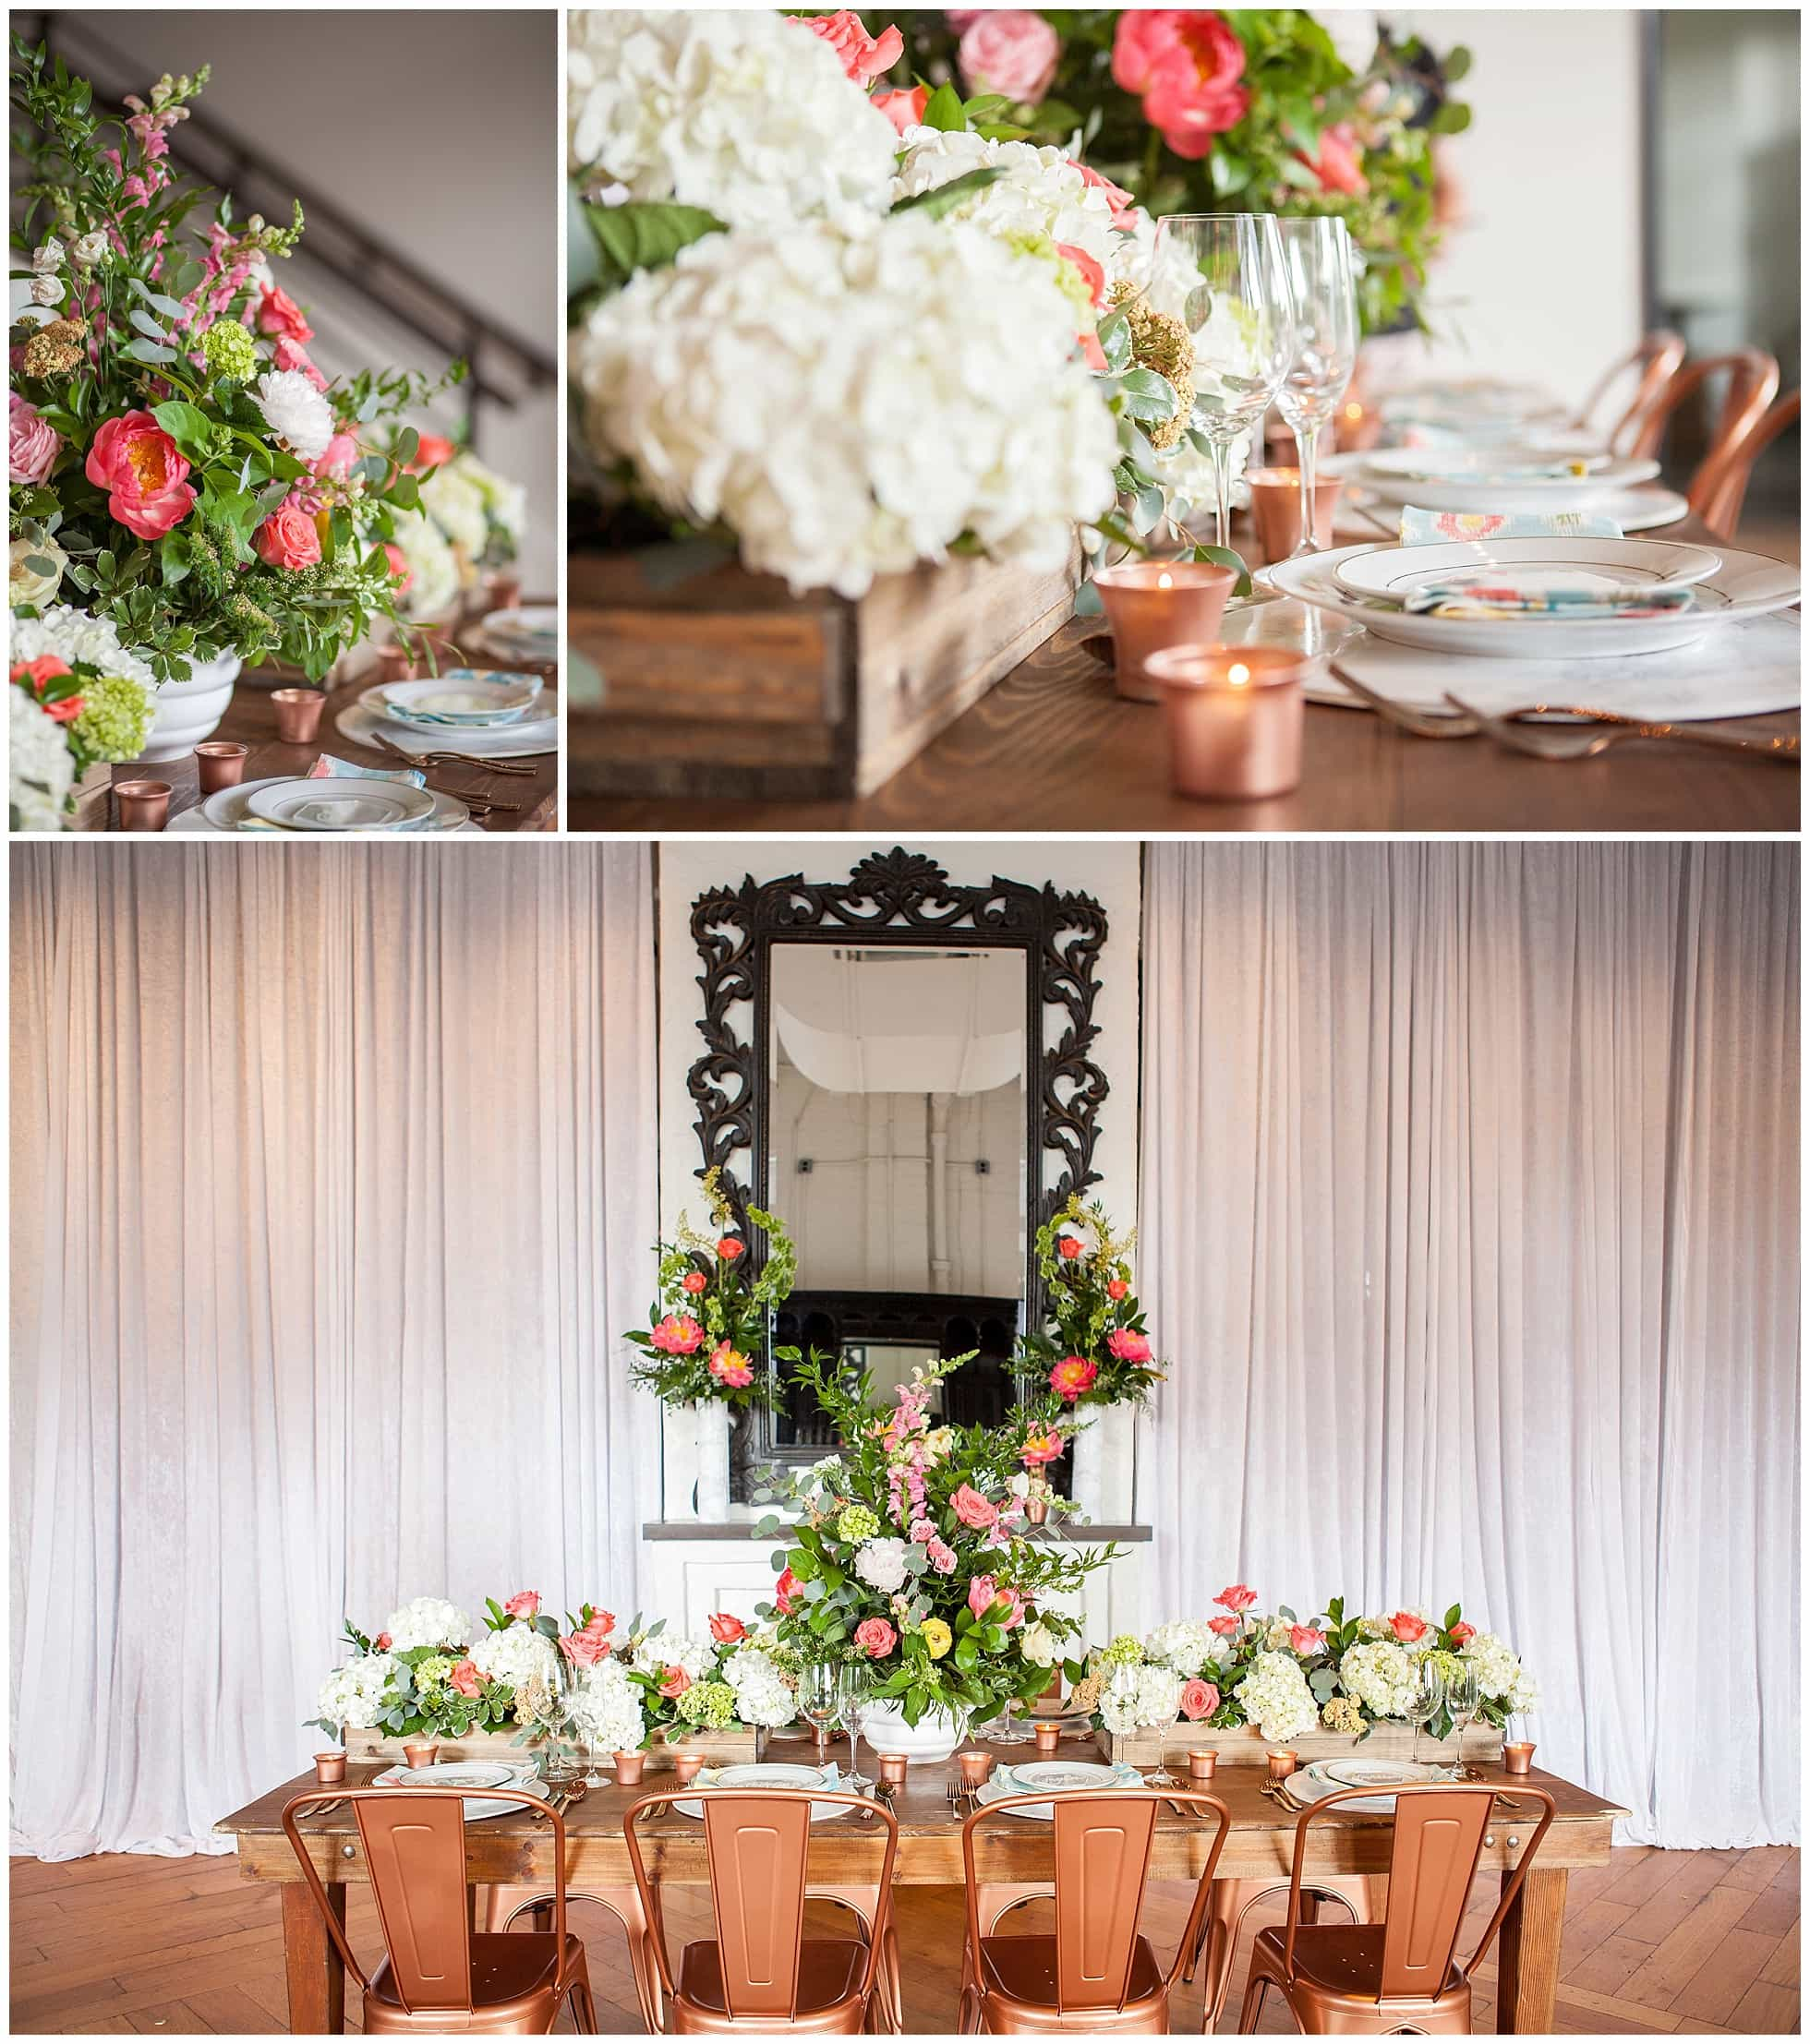 Peach And Pink Wedding Colors With Fabulous Copper Chairs Candles Unique Rustic Table Decor